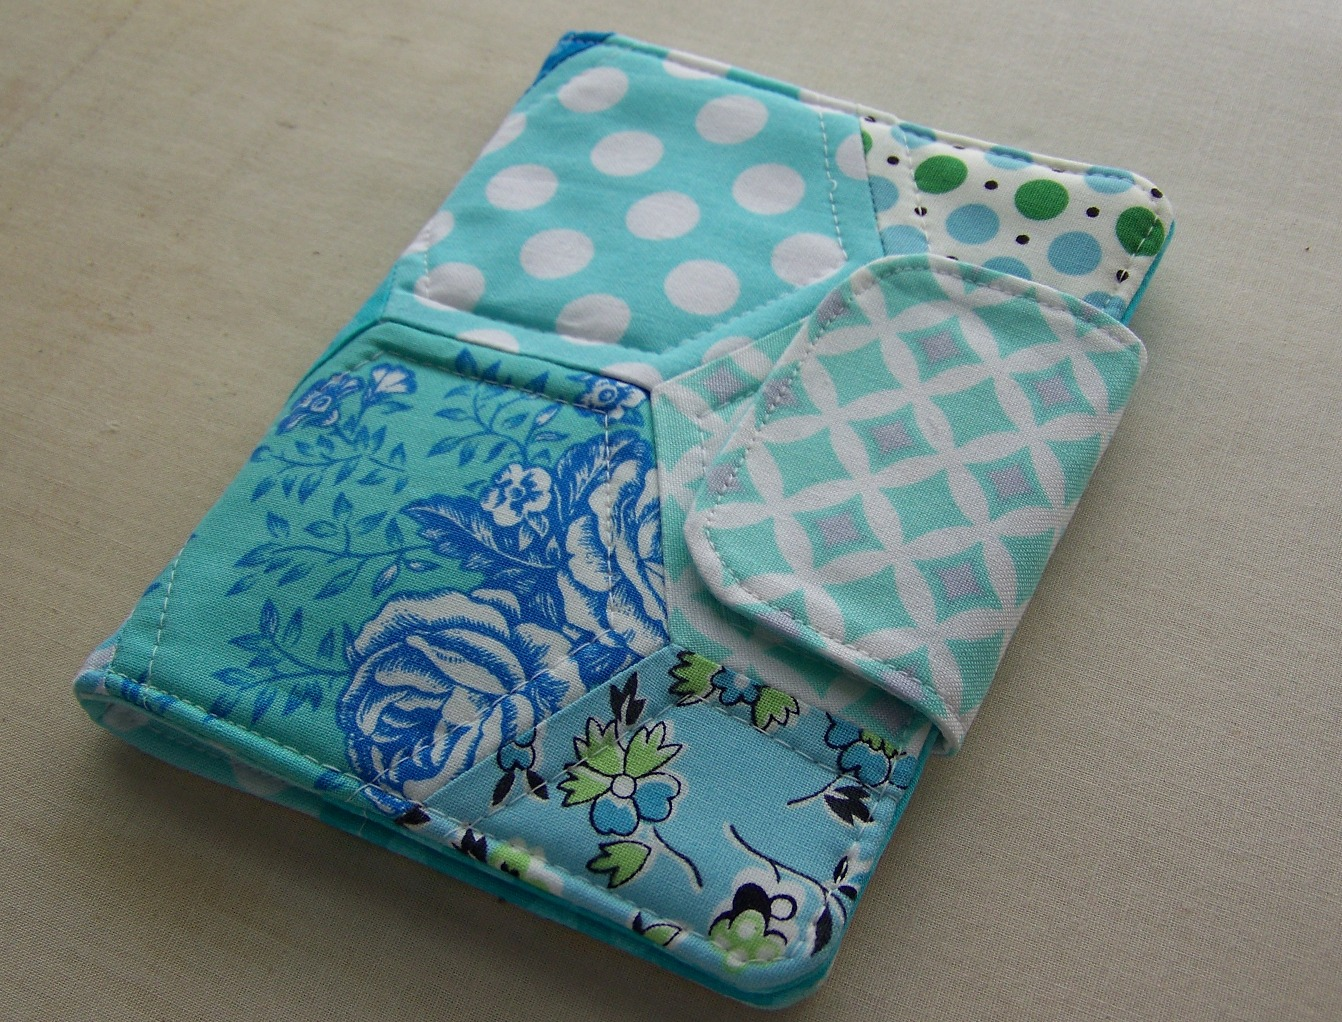 How To Make A Book Cover Out Of Fabric : Sew lux fabric hexagon needle book